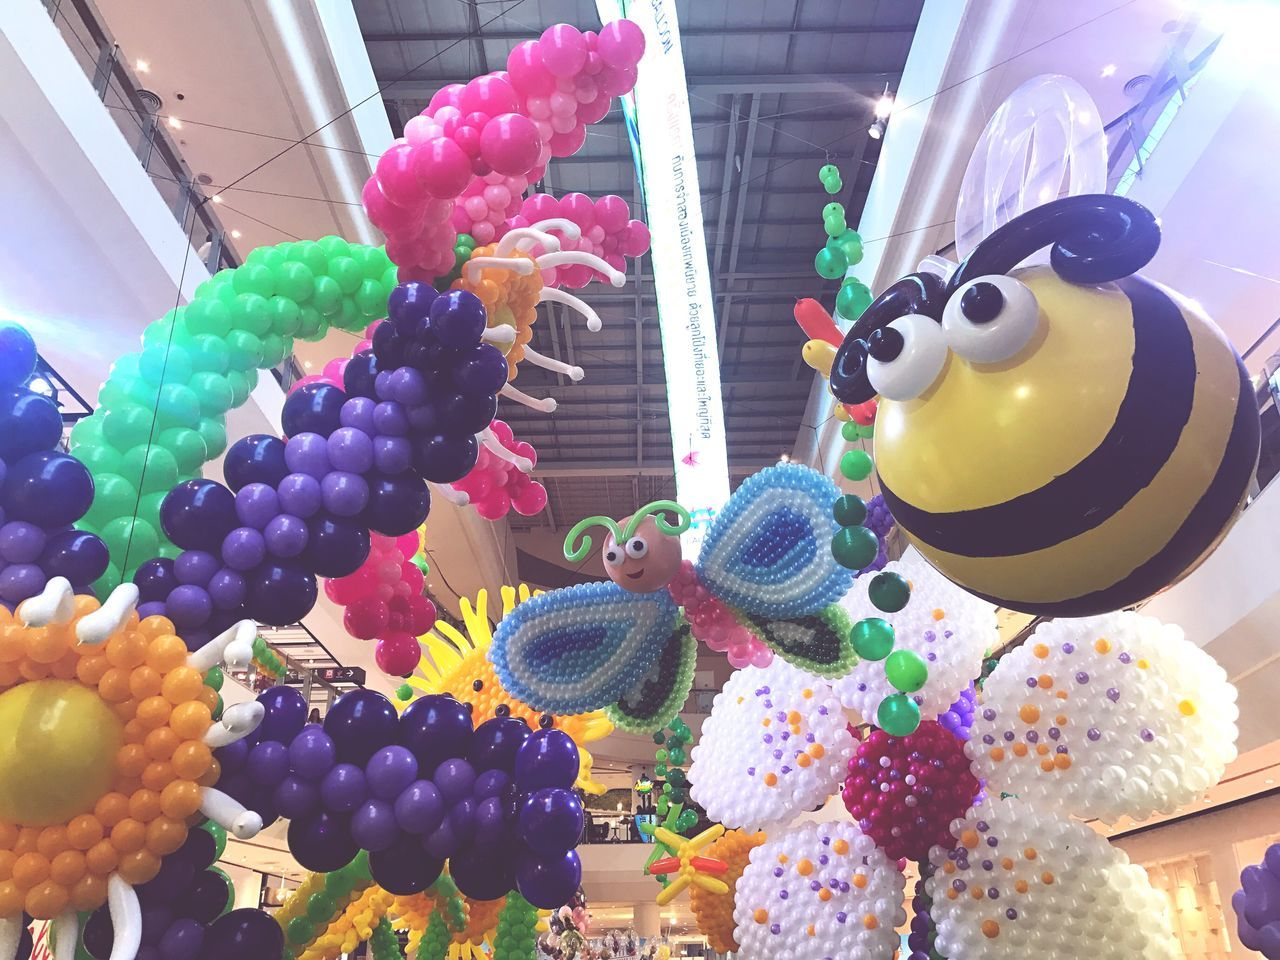 Multi Colored Balloon Vibrant Color No People Variation Celebration Large Group Of Objects Indoors  Helium Balloon Day